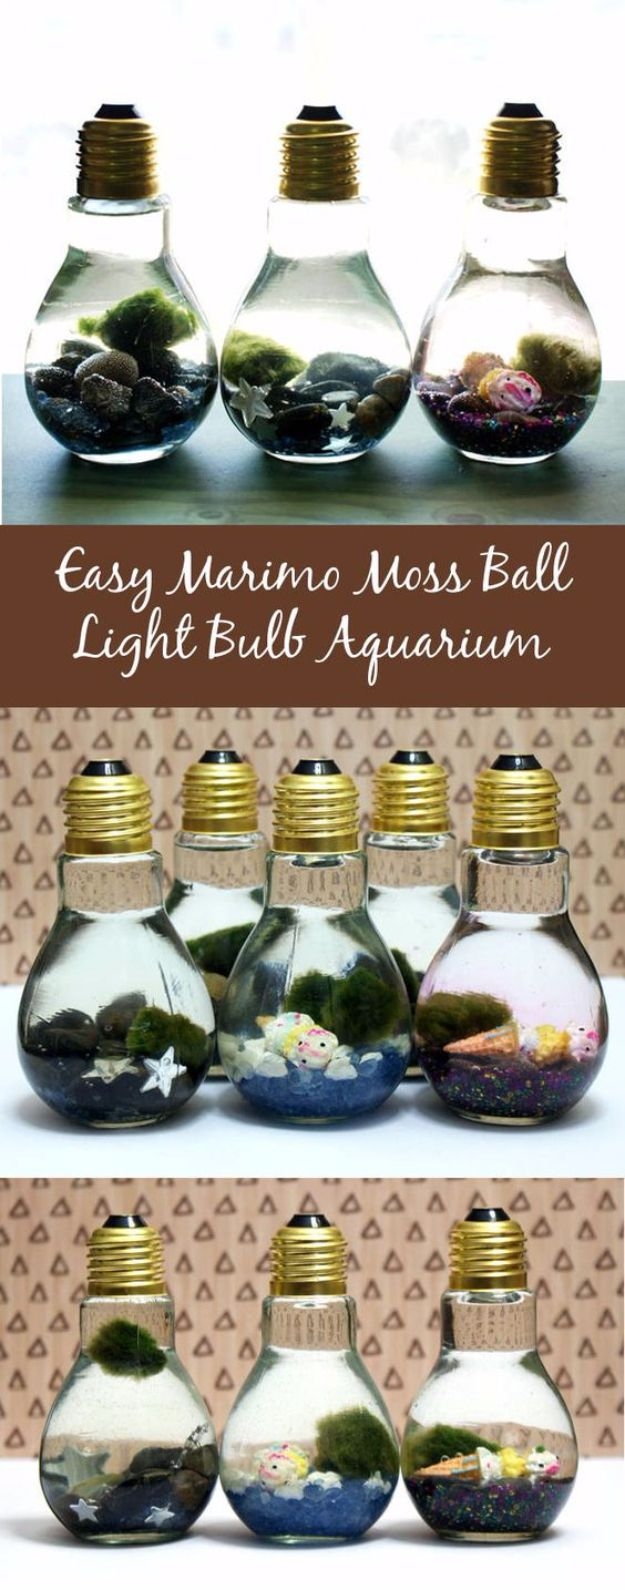 41 of the easiest diys ever marimo moss ball simple for Cheap crafts to make and sell